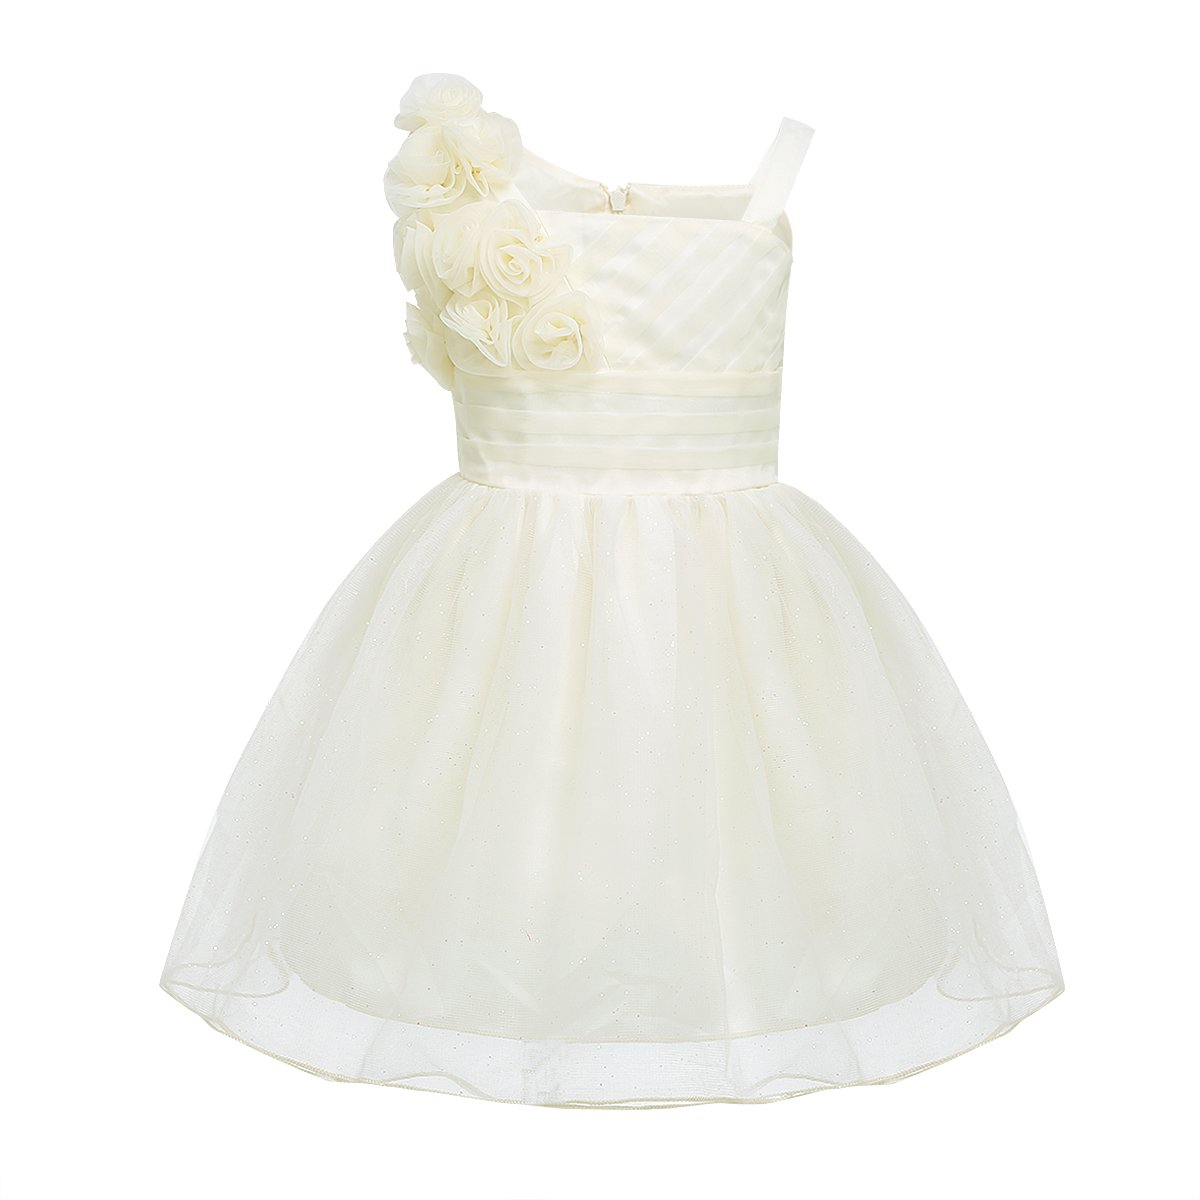 CHICTRY Baby Toddler Girls Glitter Tulle 3D Rose Princess Wedding Pageant Party Flower Dresses Champagne 9-12 Months